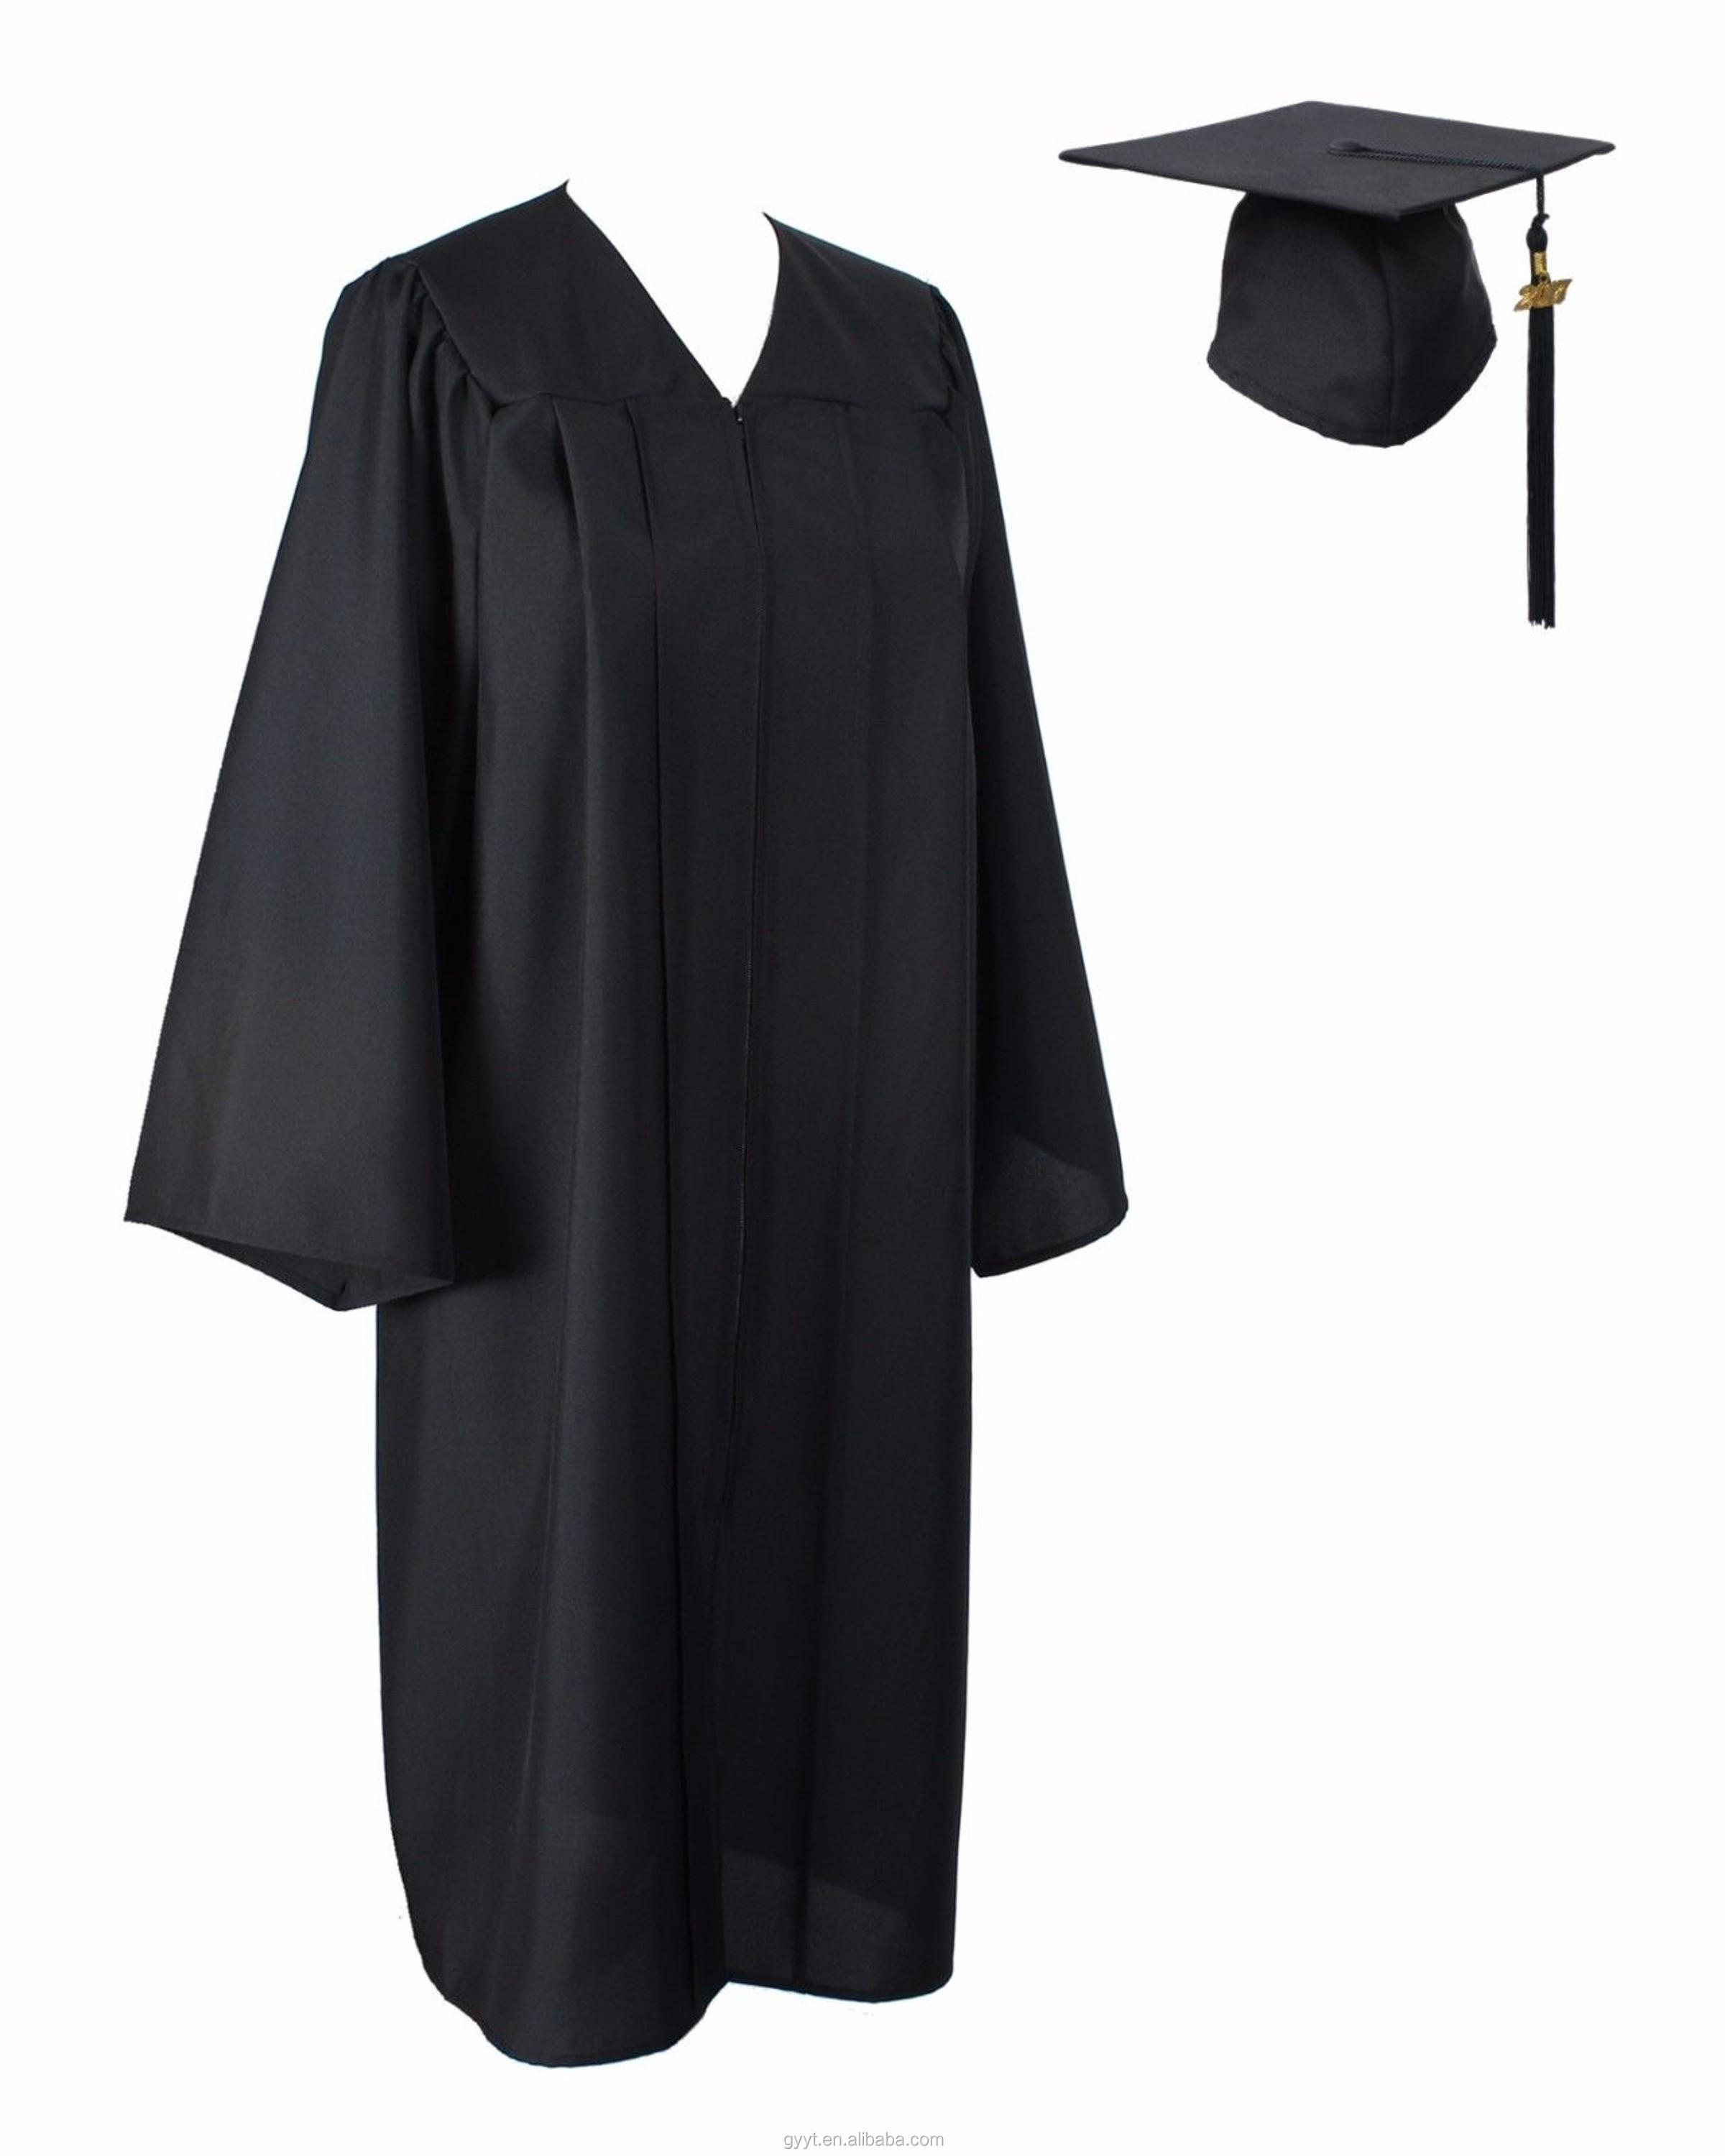 Black Graduation Cap And Gown With 2018 Year Charm Bachelor - Buy ...